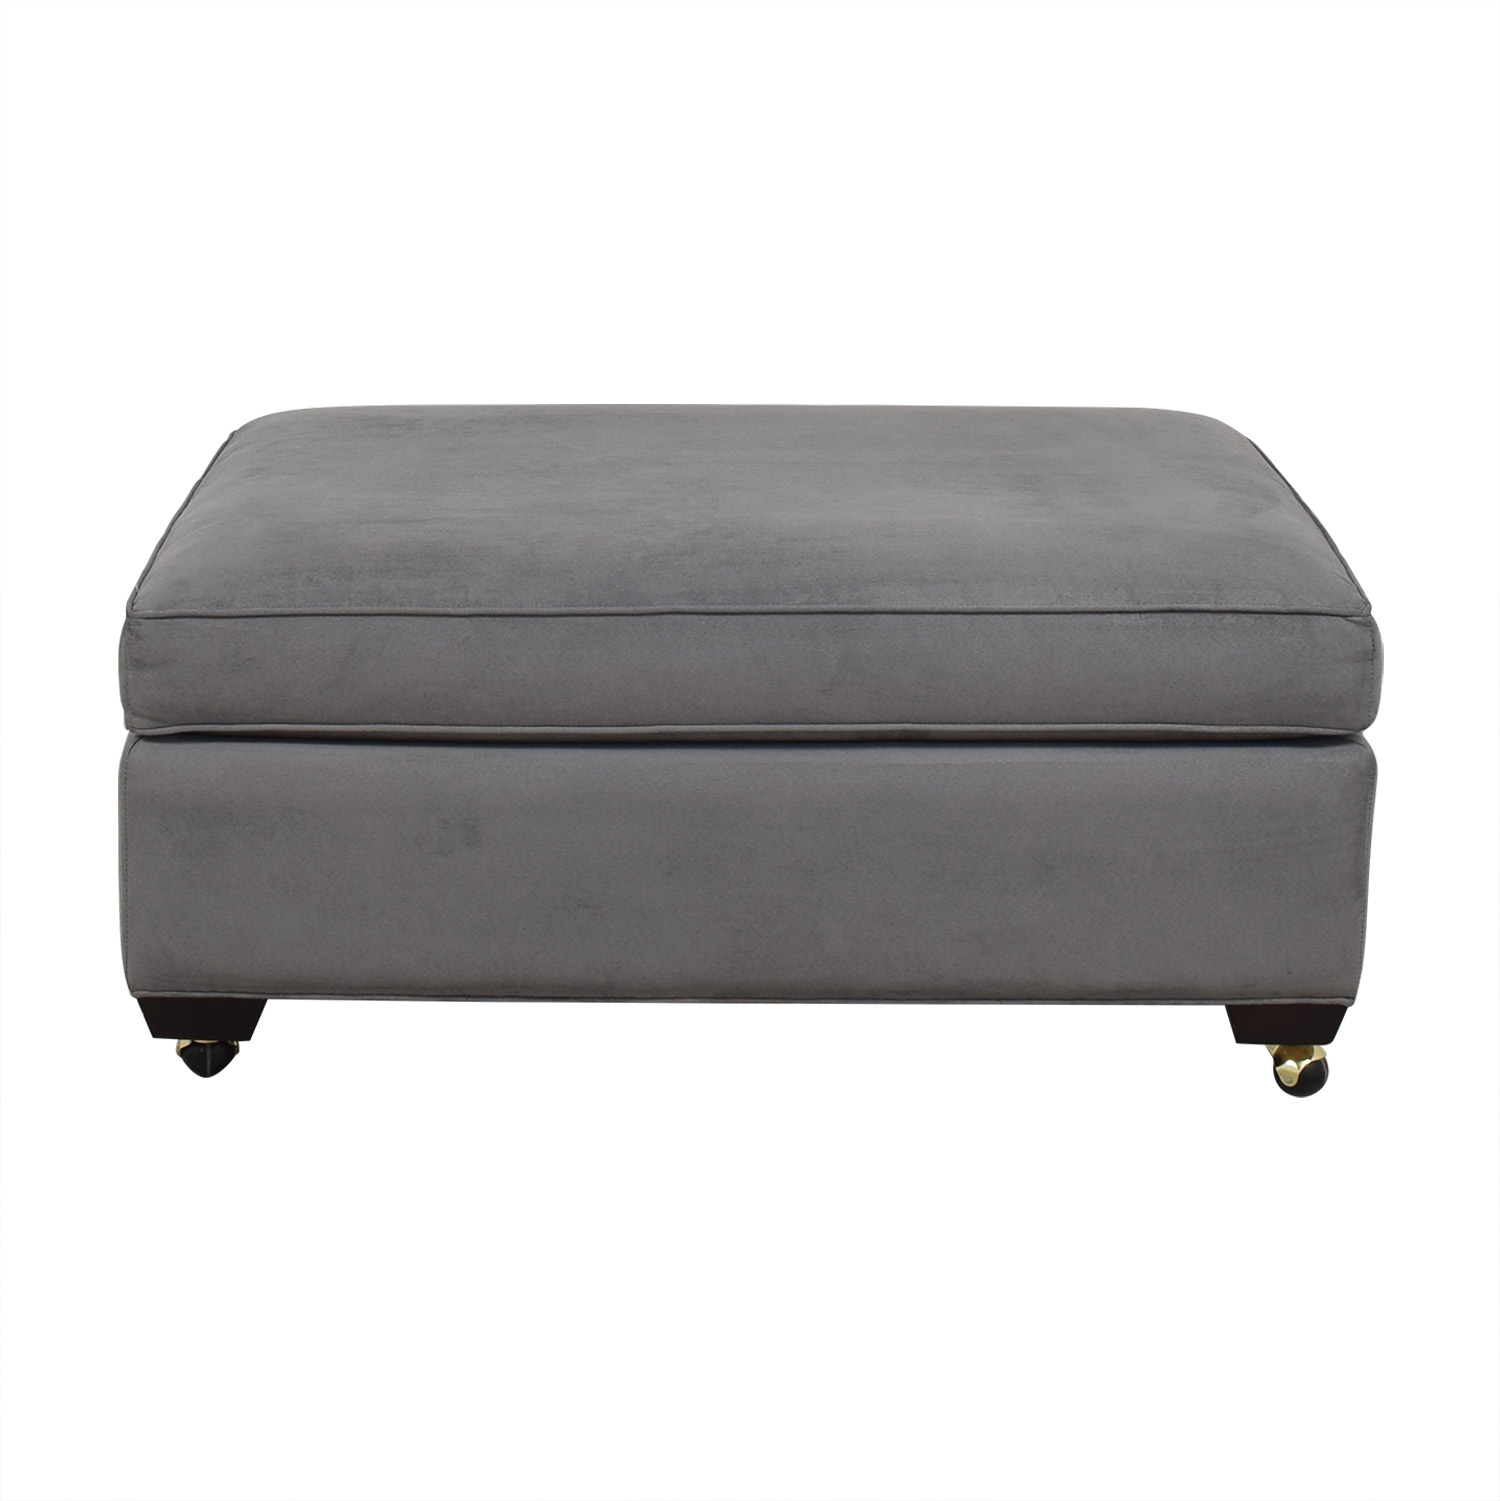 Crate & Barrel Crate & Barrel Davis Ottoman nj